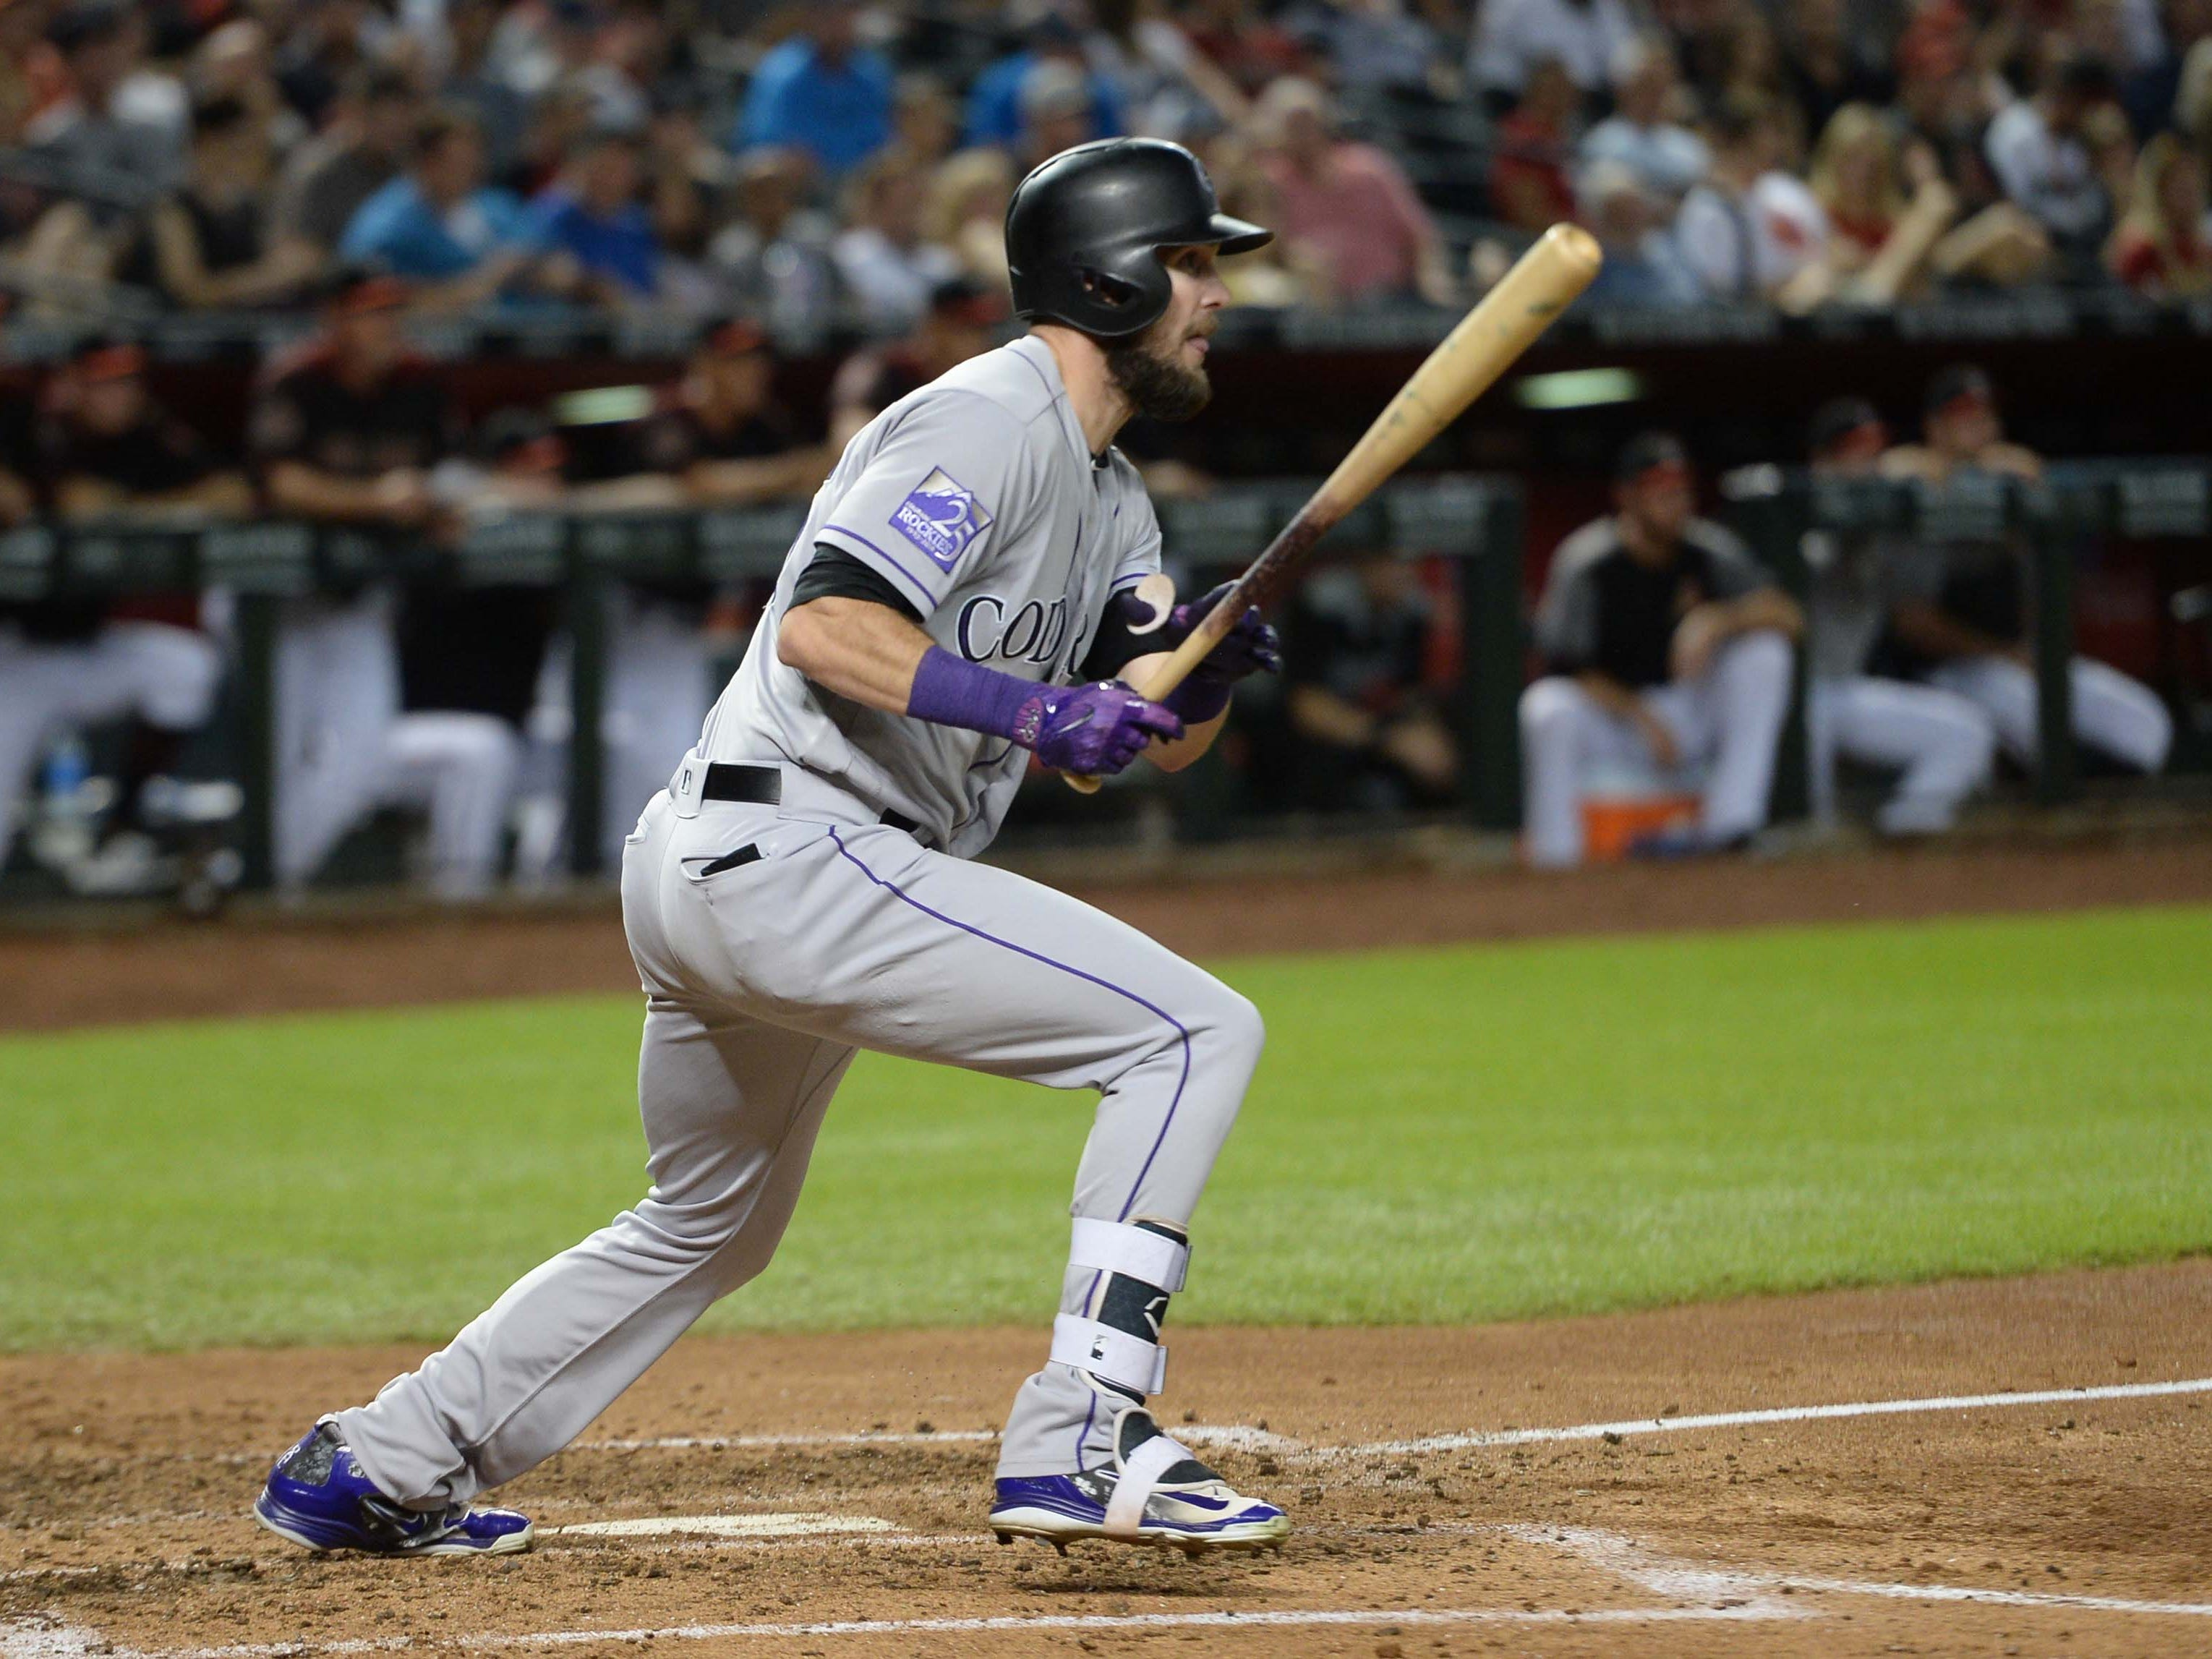 Sep 22, 2018; Phoenix, AZ, USA; Colorado Rockies left fielder David Dahl (26) hits an RBI single against the Arizona Diamondbacks during the third inning at Chase Field.